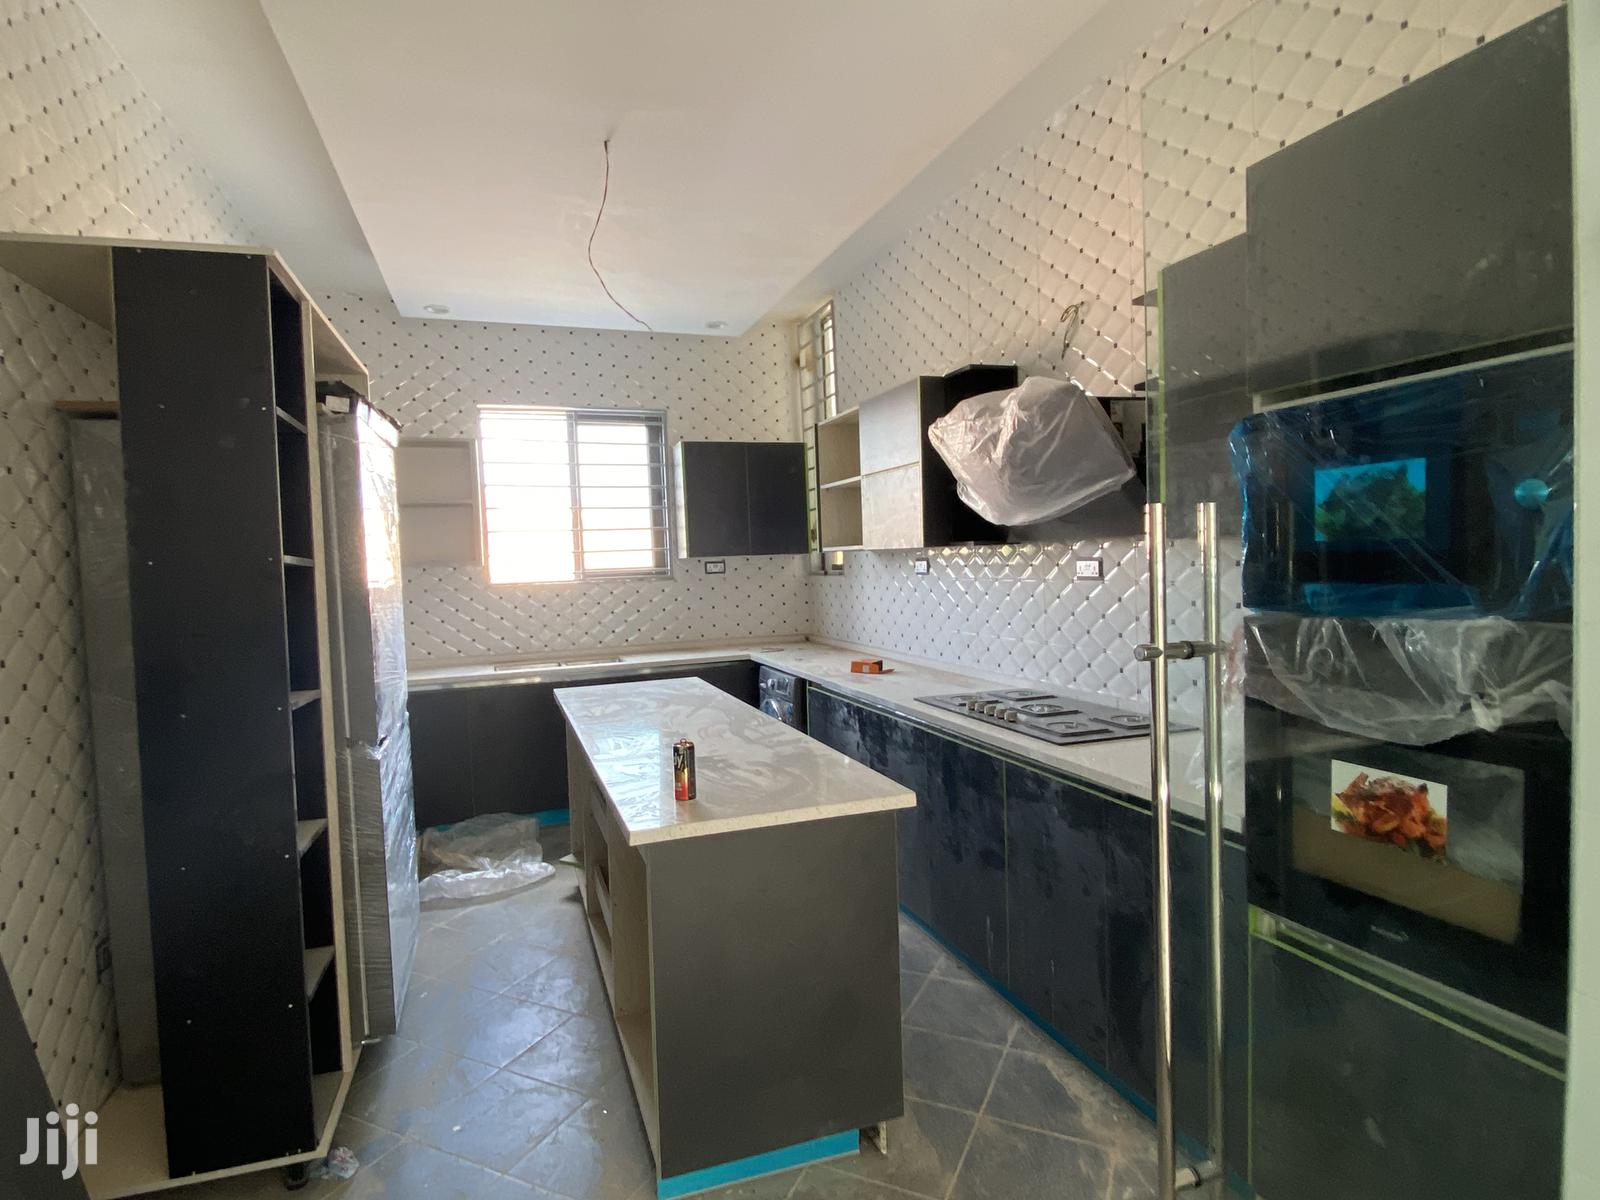 5 Bedrooms For Sale At North Legon | Houses & Apartments For Sale for sale in East Legon, Greater Accra, Ghana